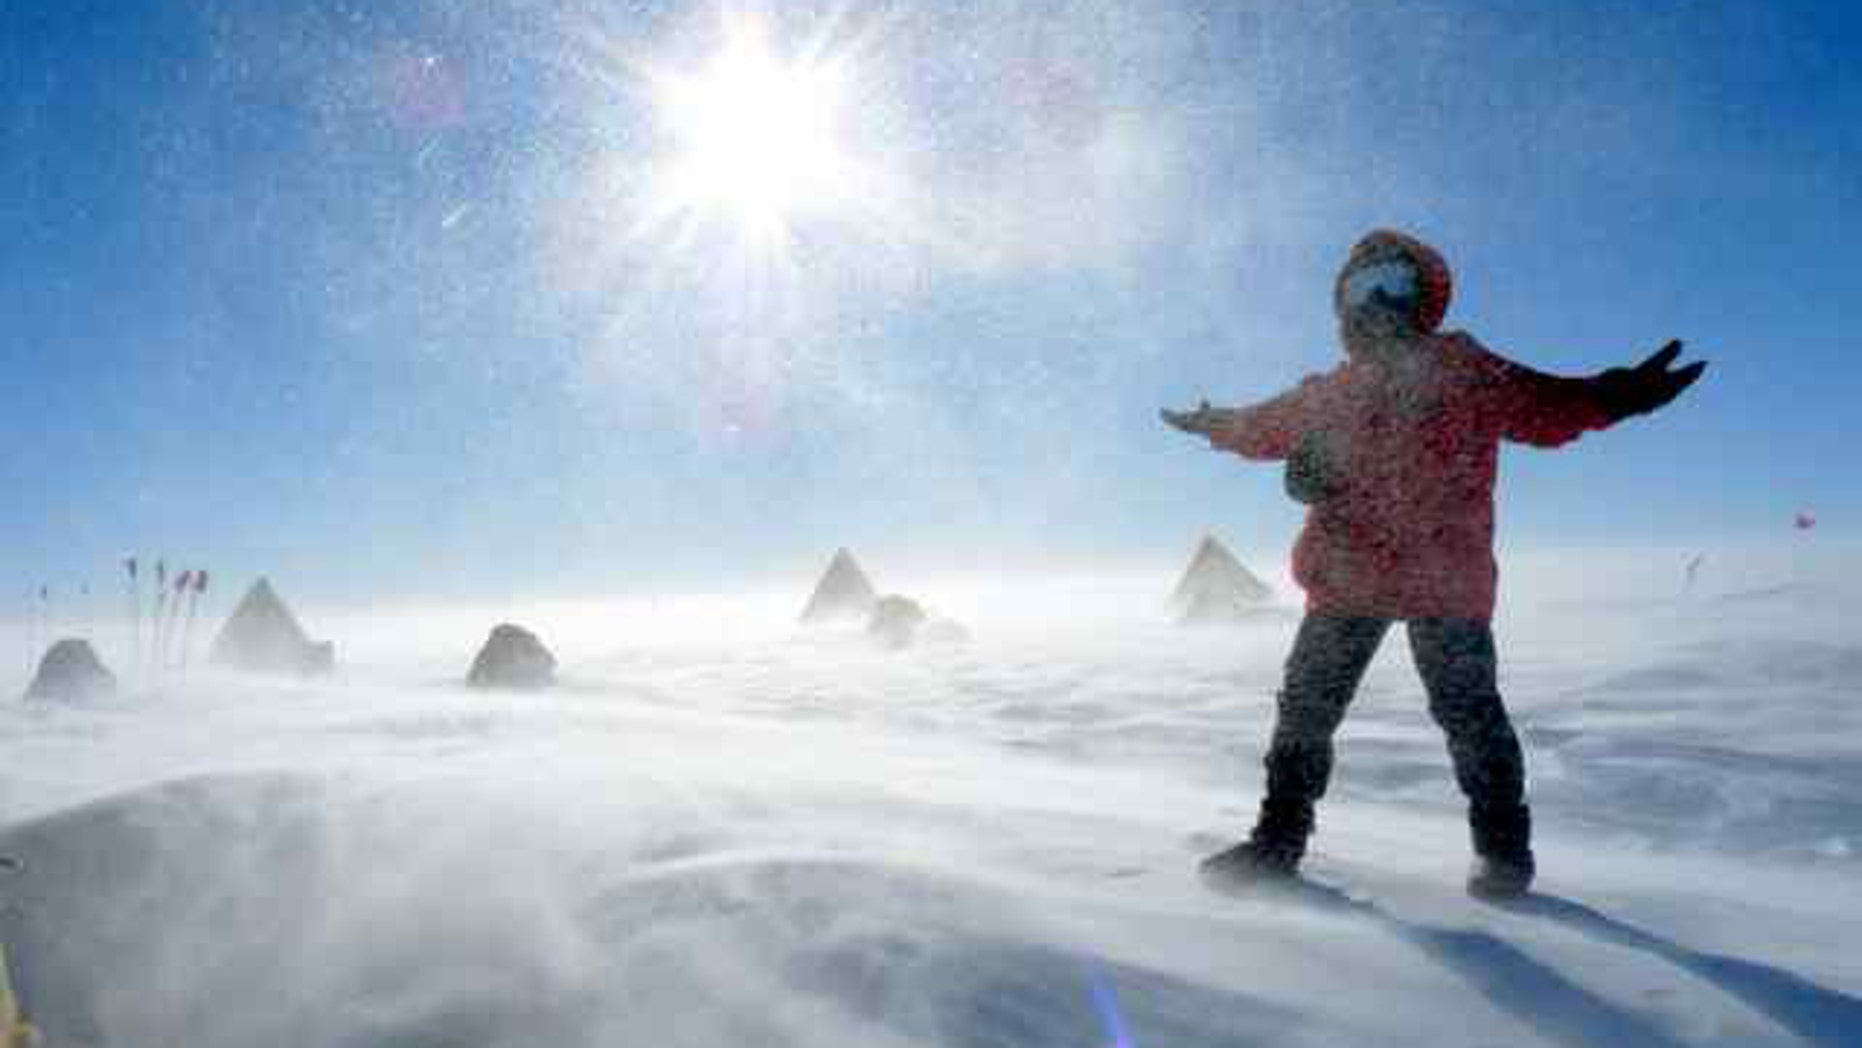 Search for meteorites program places researchers on the ice to live in base camp conditions of wind and snow.